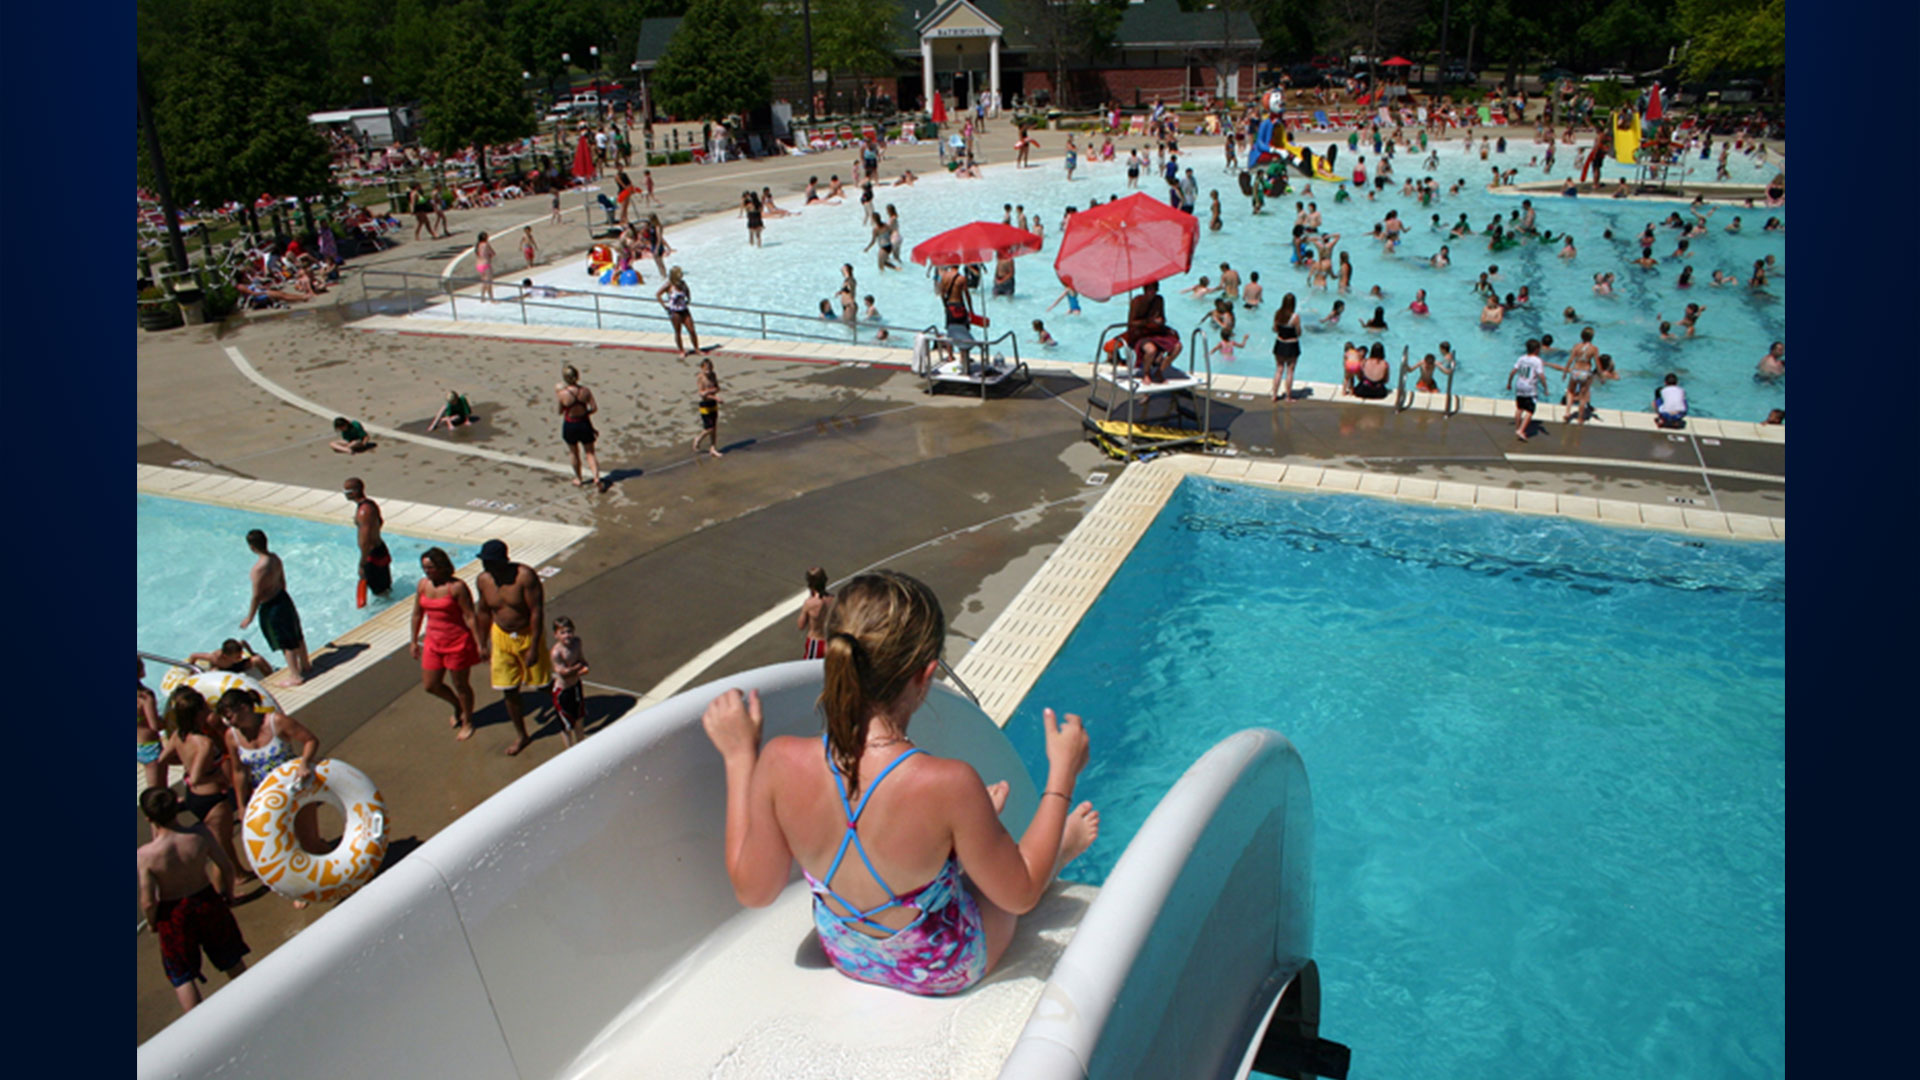 Terrace park pool closed for mechanical issues - Terrace park swimming pool sioux falls ...